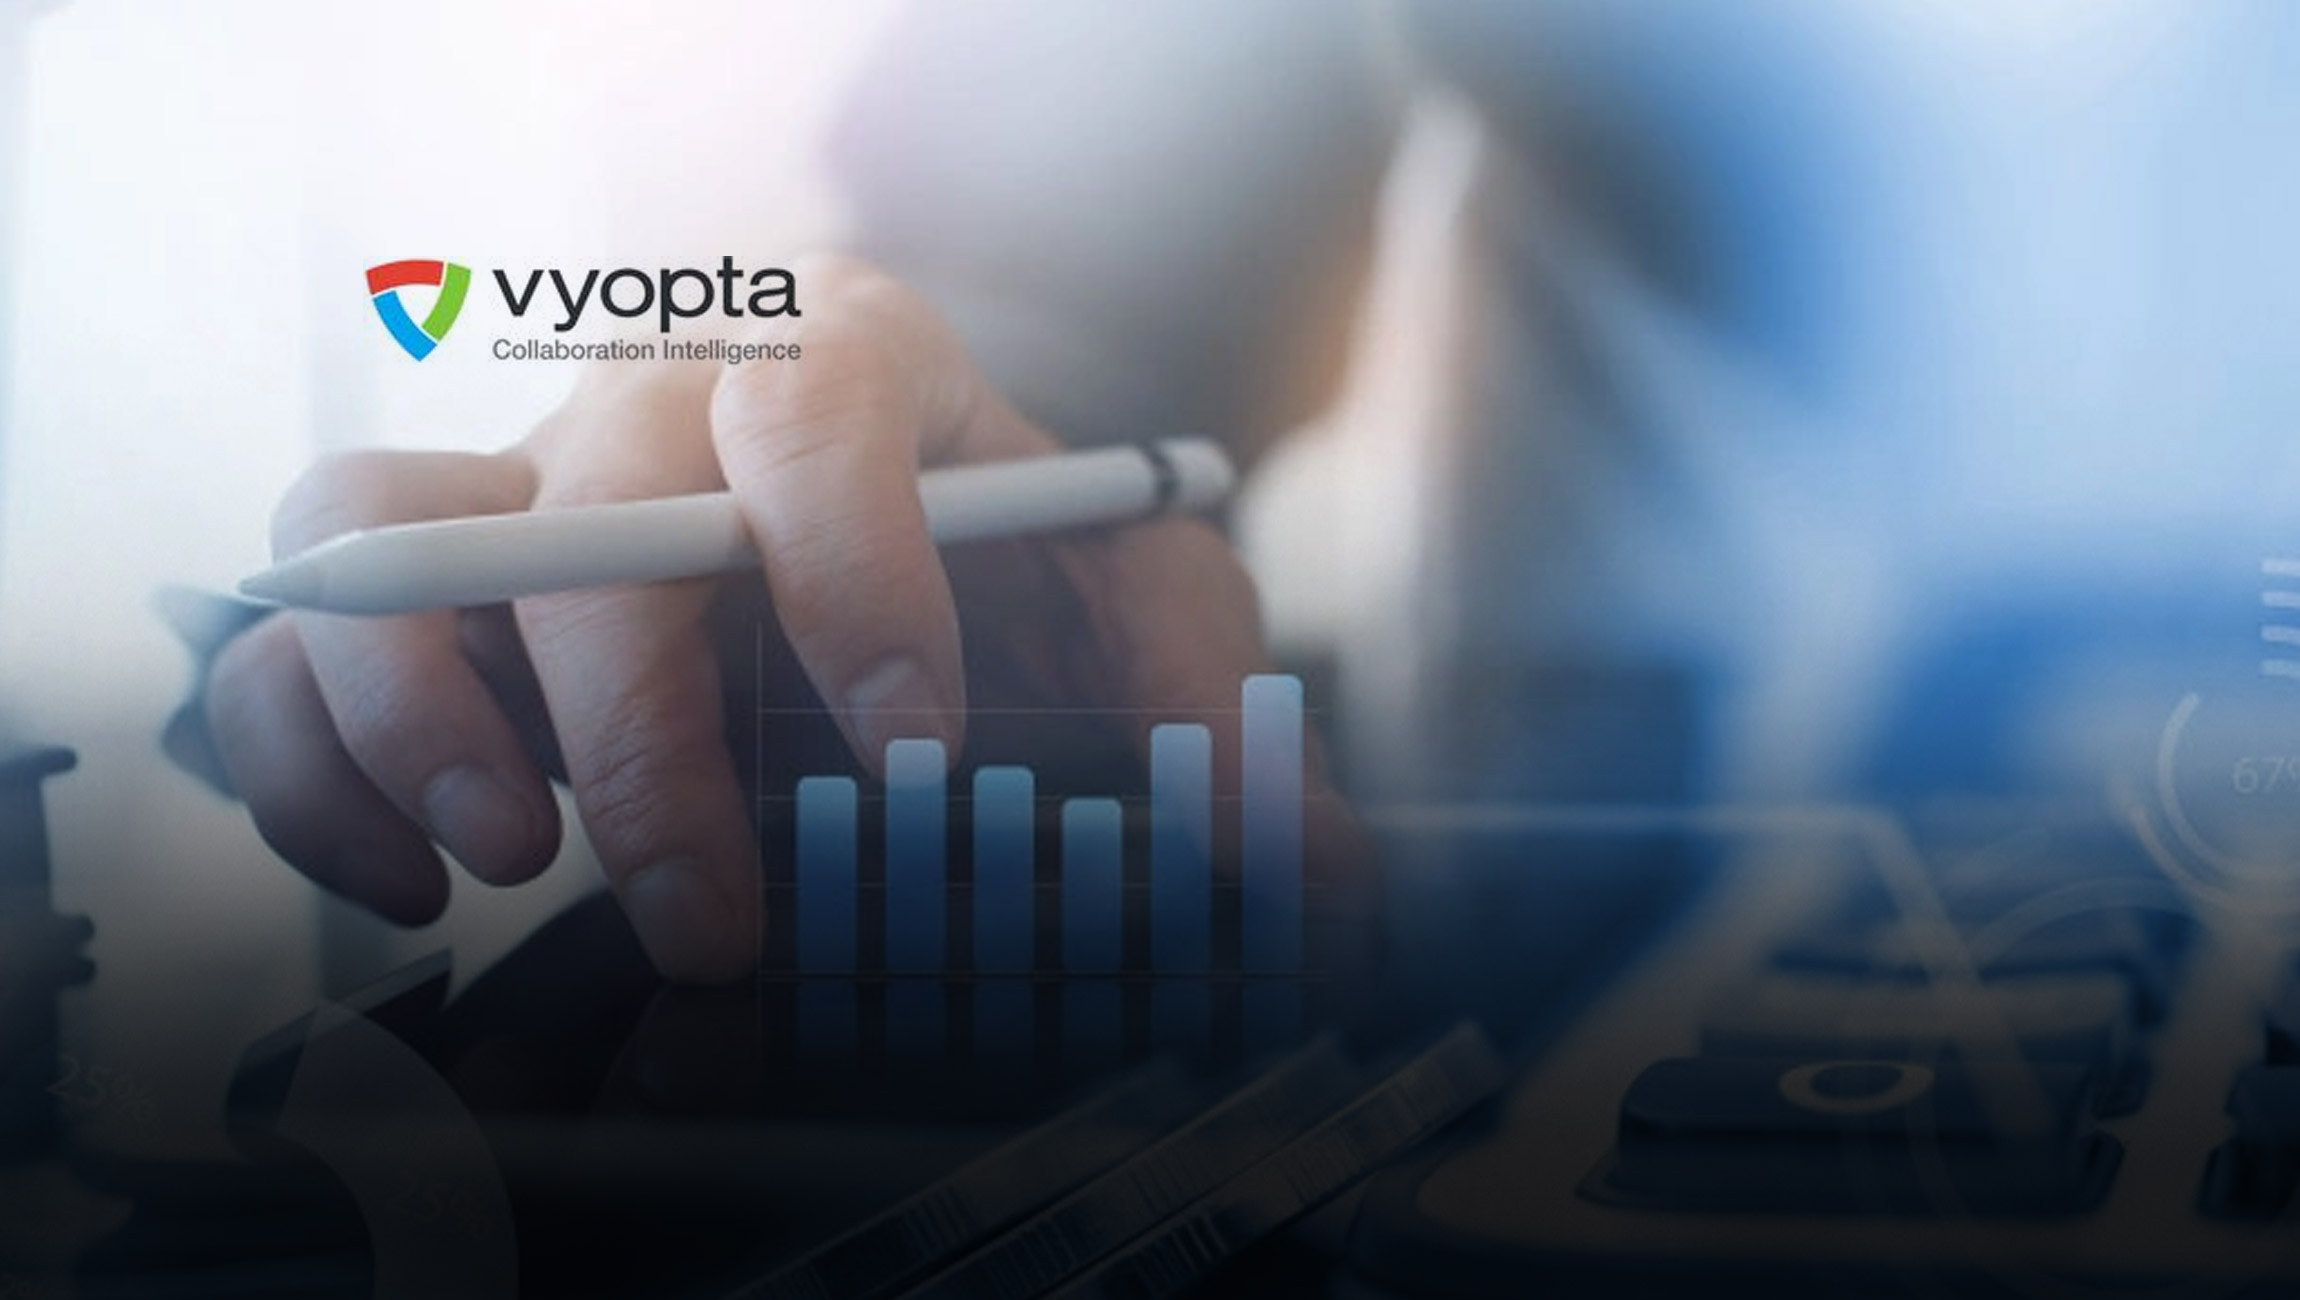 Vyopta Doubles UCaaS Users Supported Since Start of Pandemic